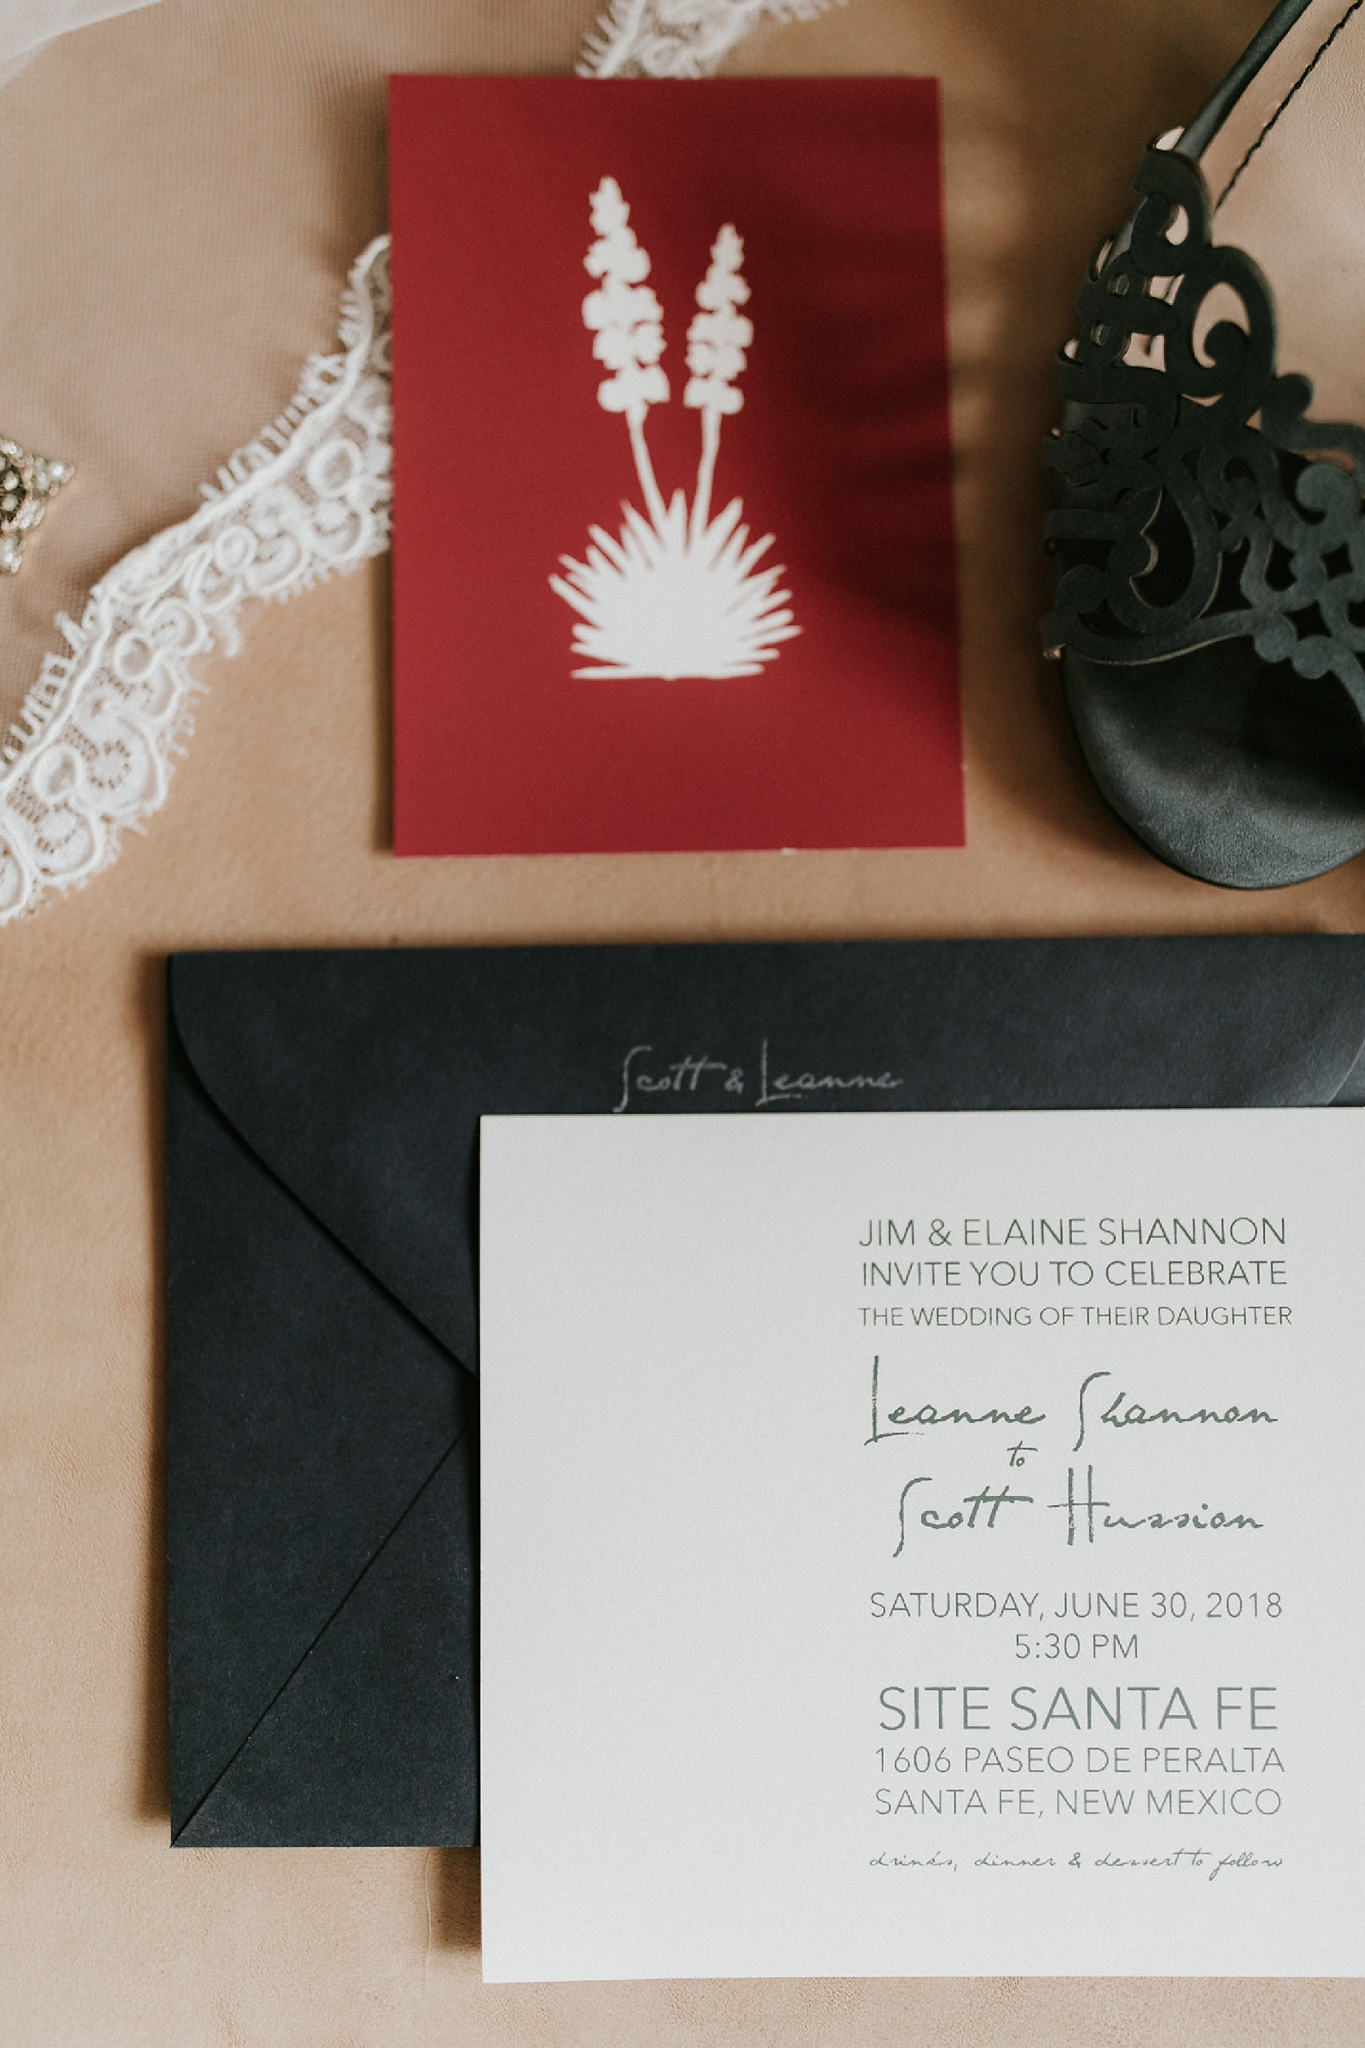 Alicia+lucia+photography+-+albuquerque+wedding+photographer+-+santa+fe+wedding+photography+-+new+mexico+wedding+photographer+-+new+mexico+wedding+-+wedding+invitations+-+invitation+suite+-+wedding+inspo_0005.jpg